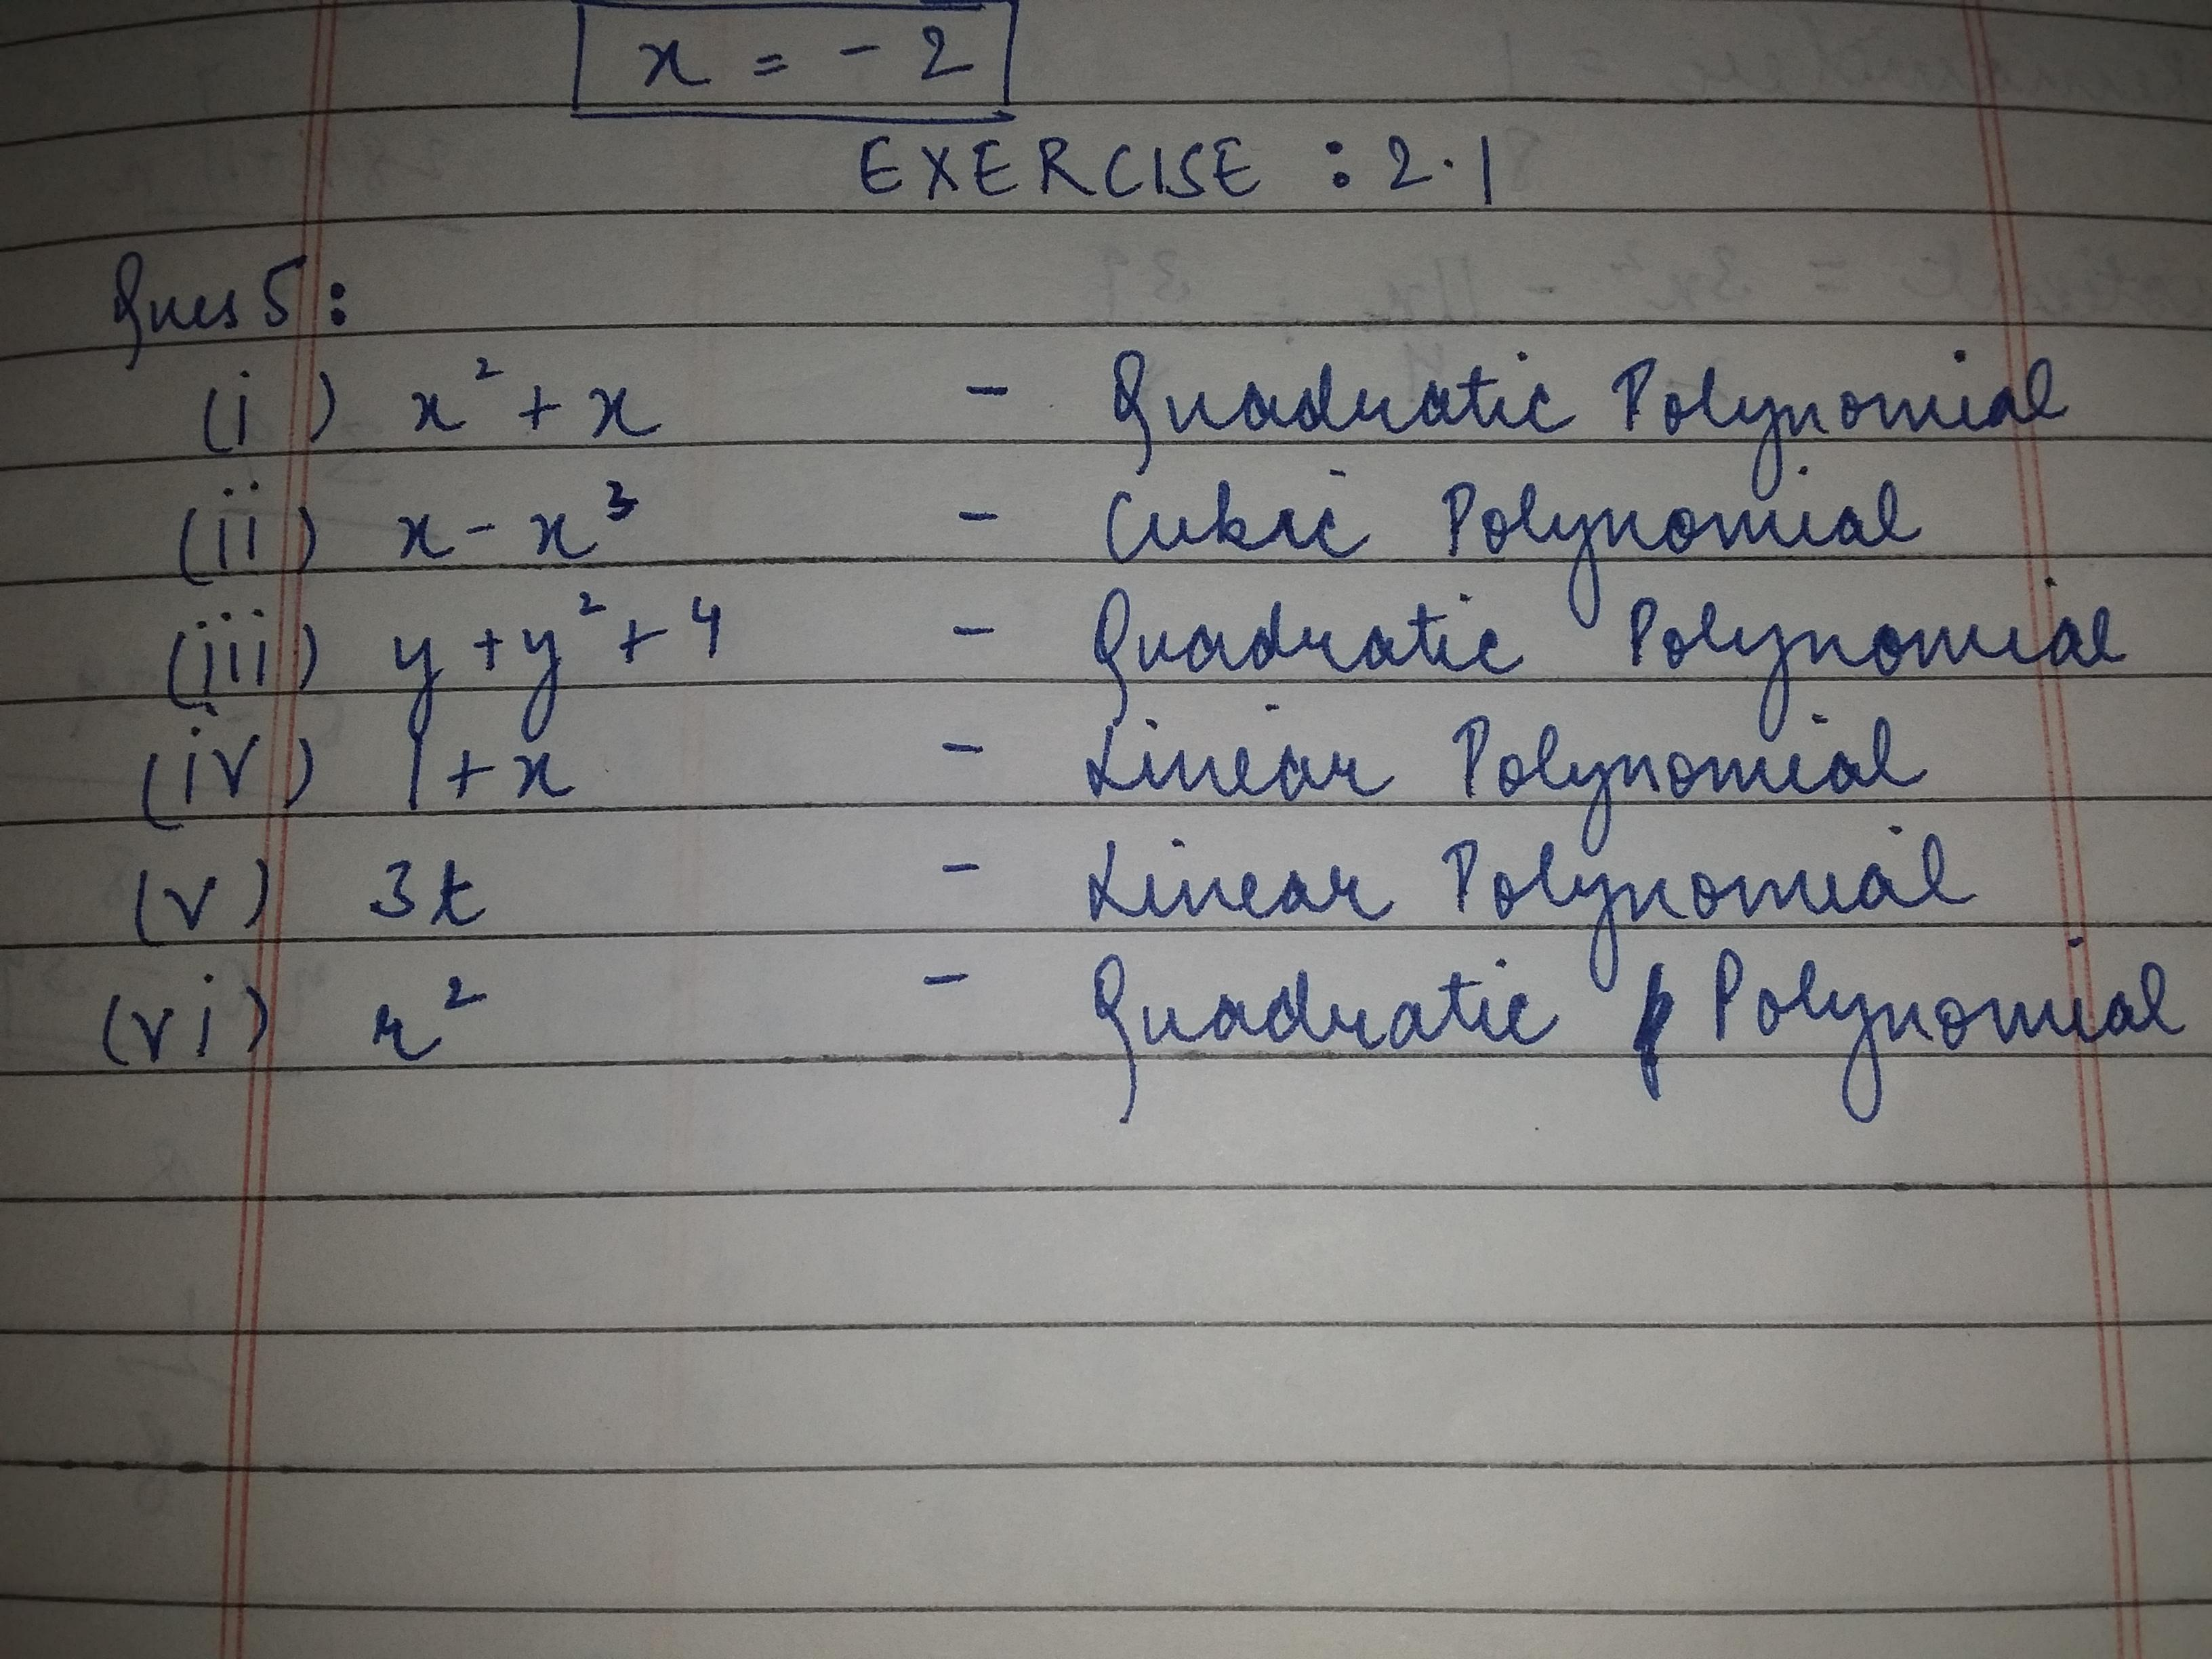 class 9 ch 2 ex 2.1 question 5 - Brainly.in